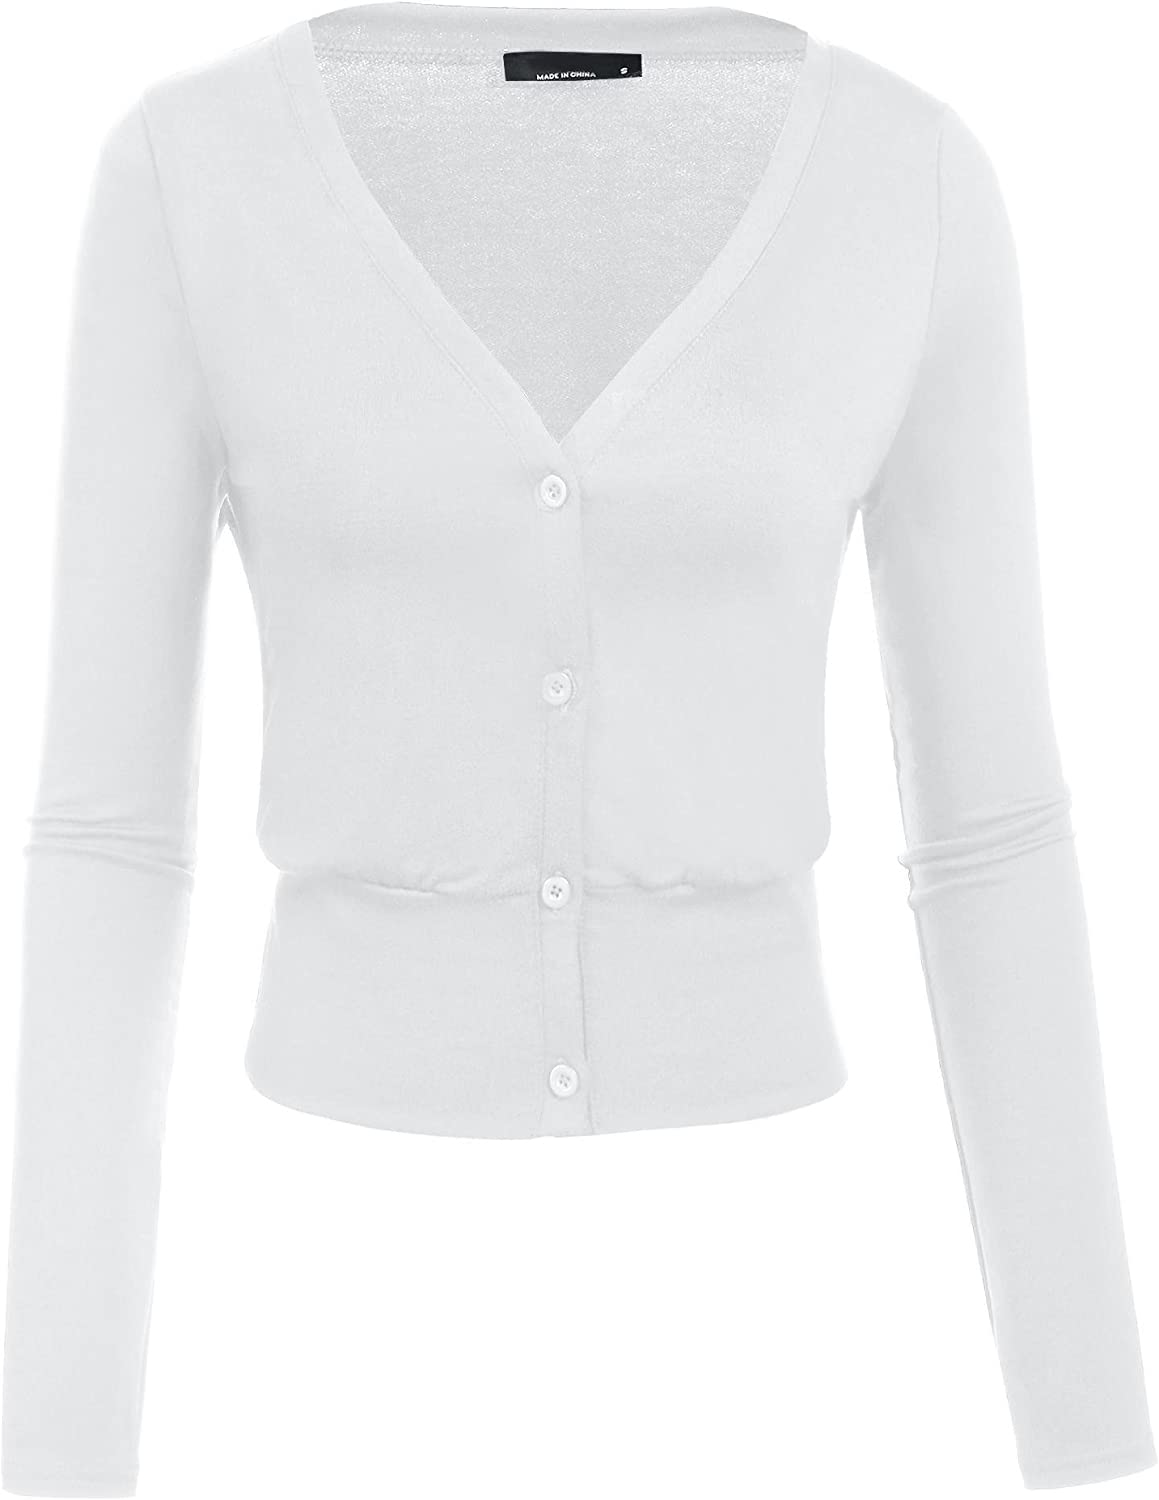 Showyoo Womens V-neck Cropped Cardigan Long Sleeve Button Down Knitted Shrug Sweater